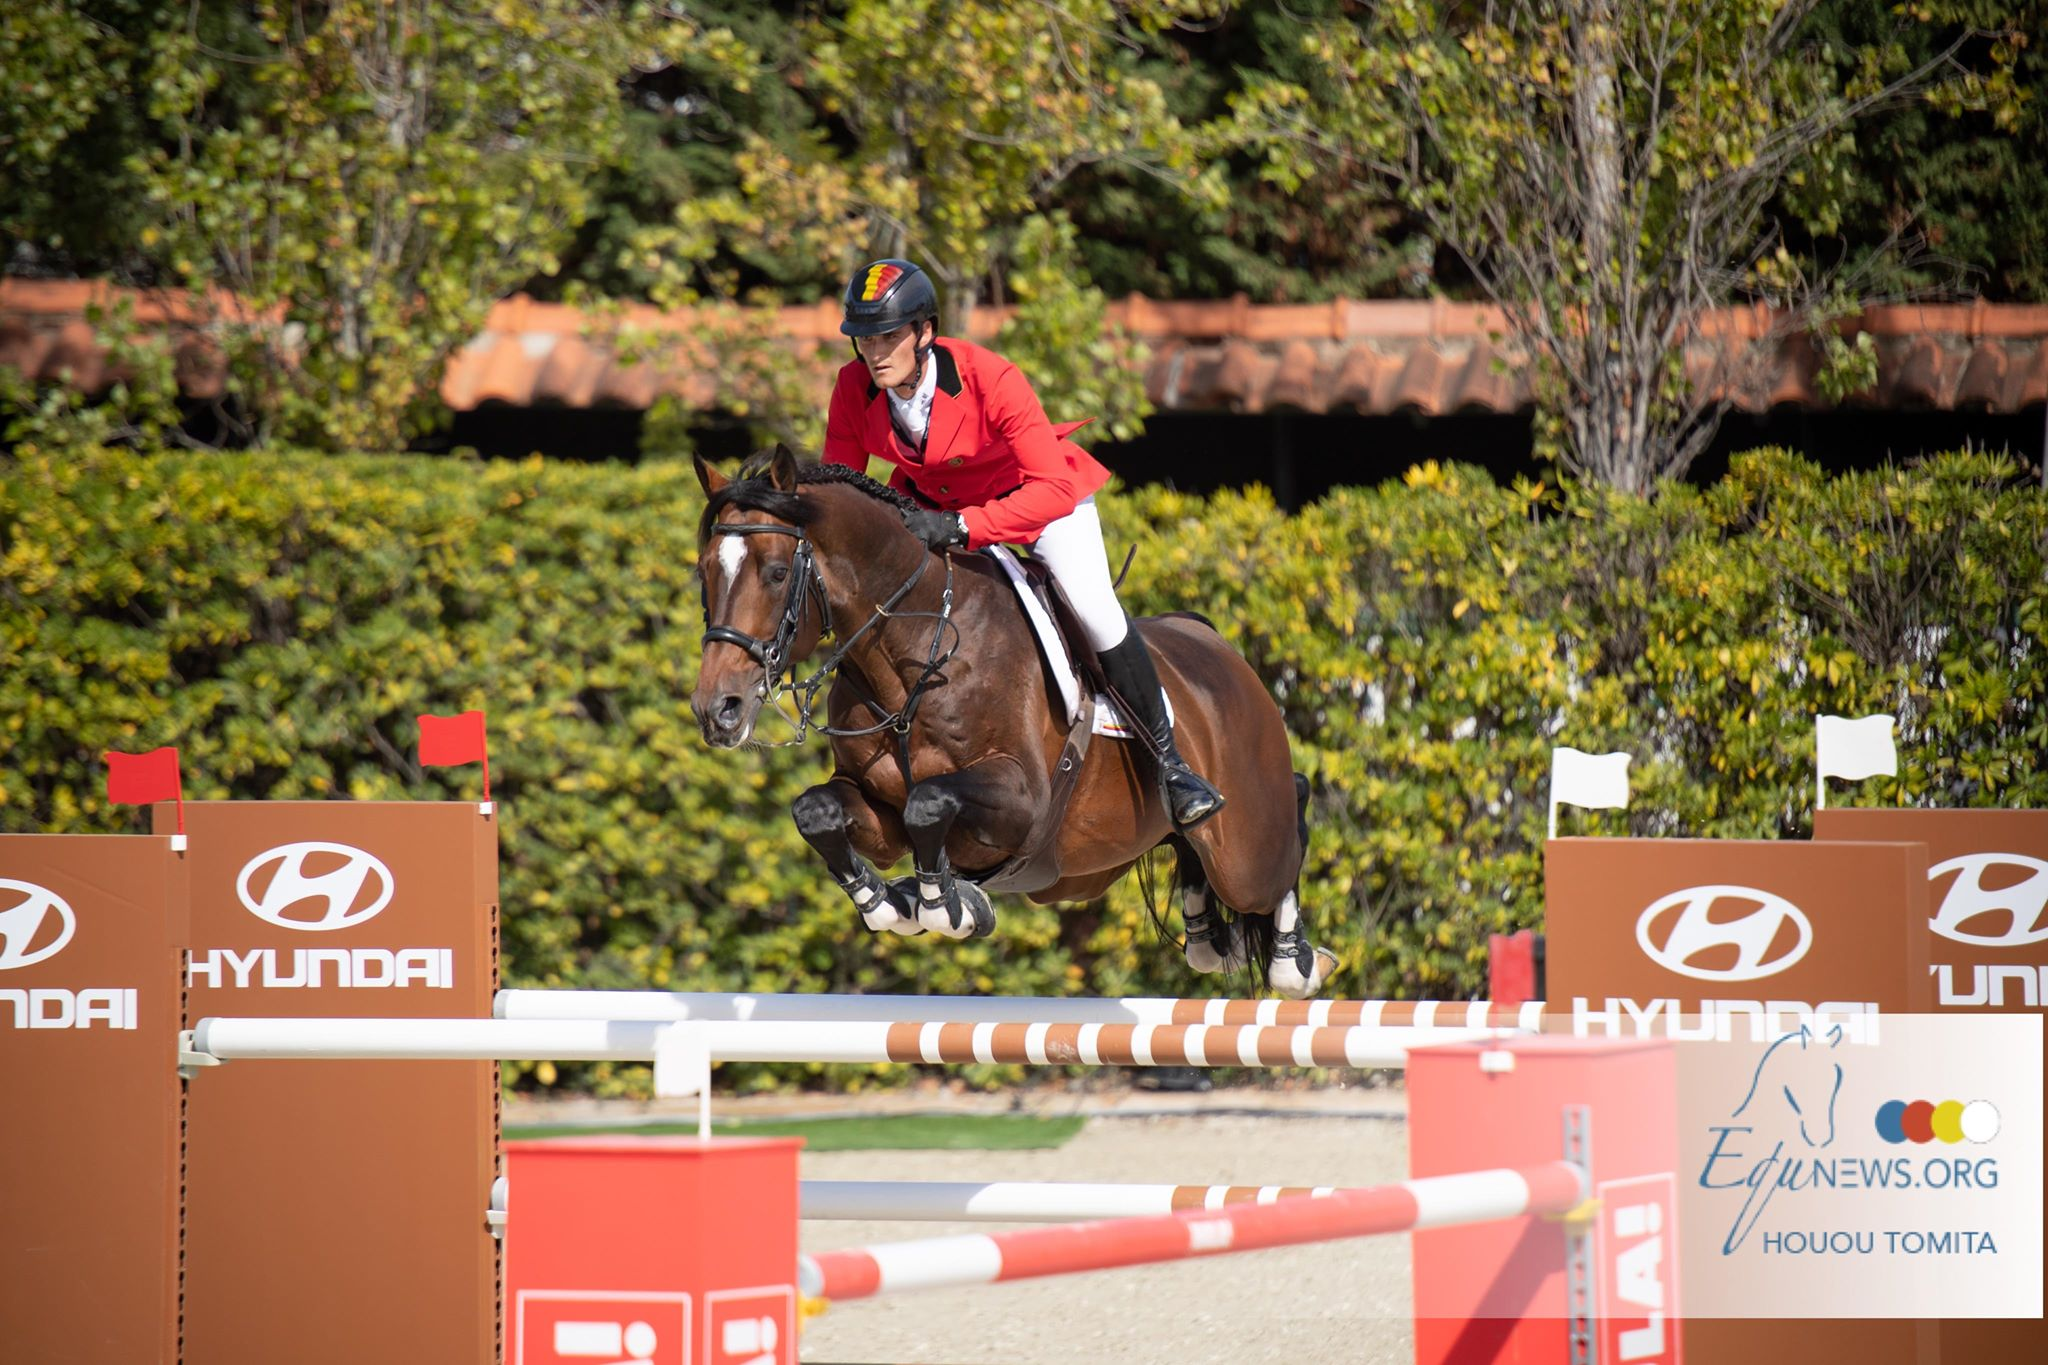 Belgium show jumpers take the lead in Nations Cup finals